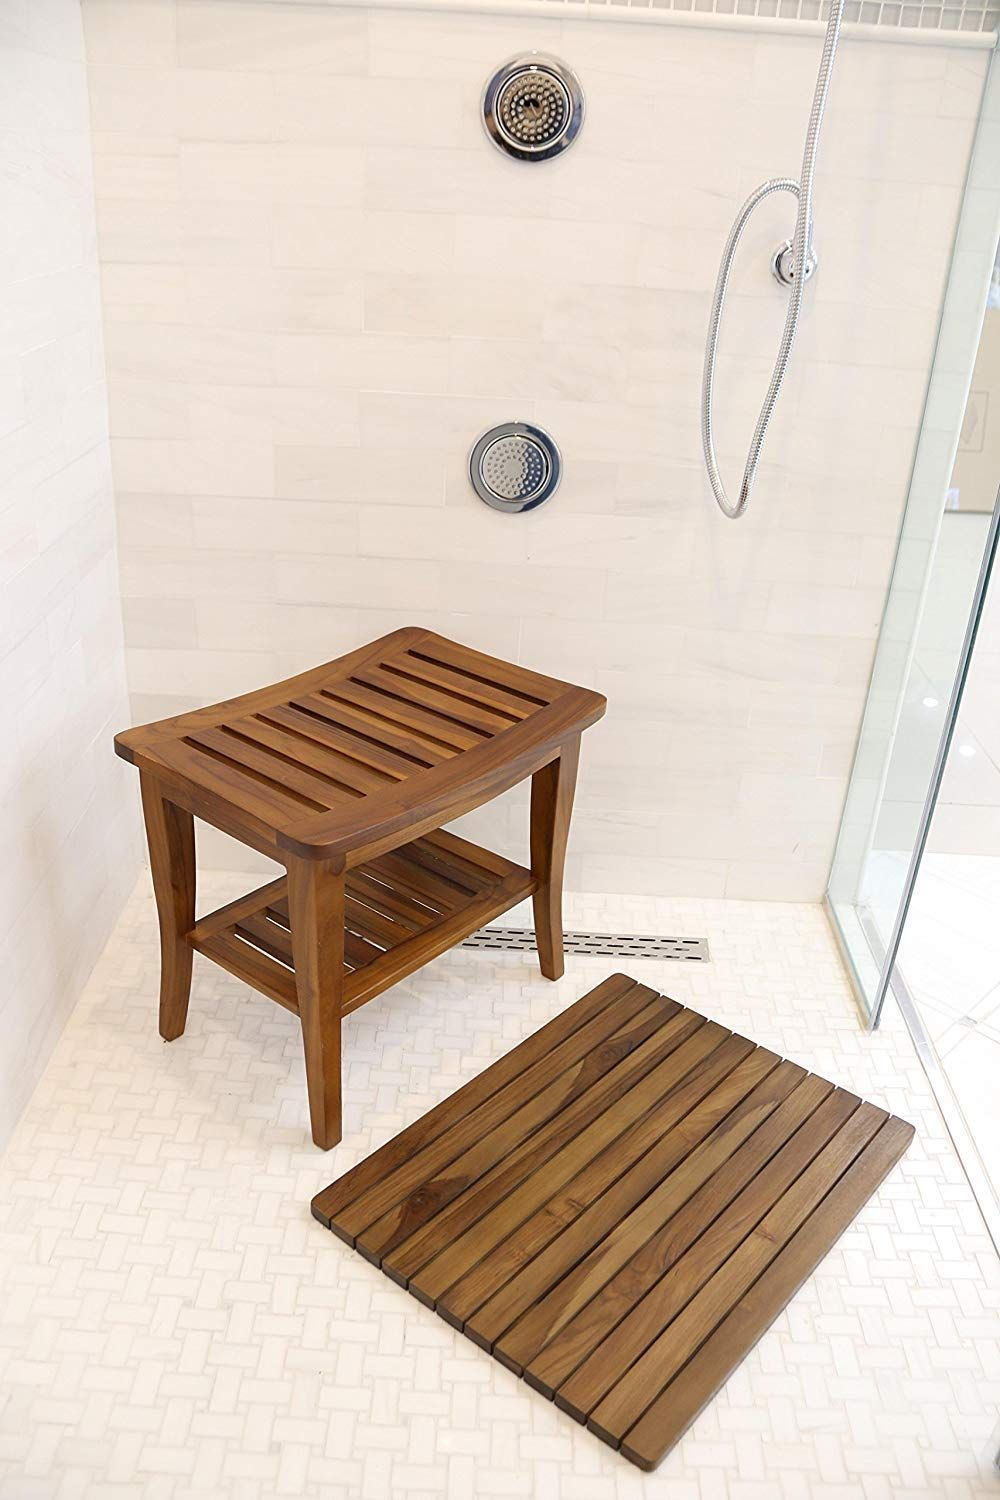 100 Best Teak Shower Benches 2020 Wood Shower Bench Teak